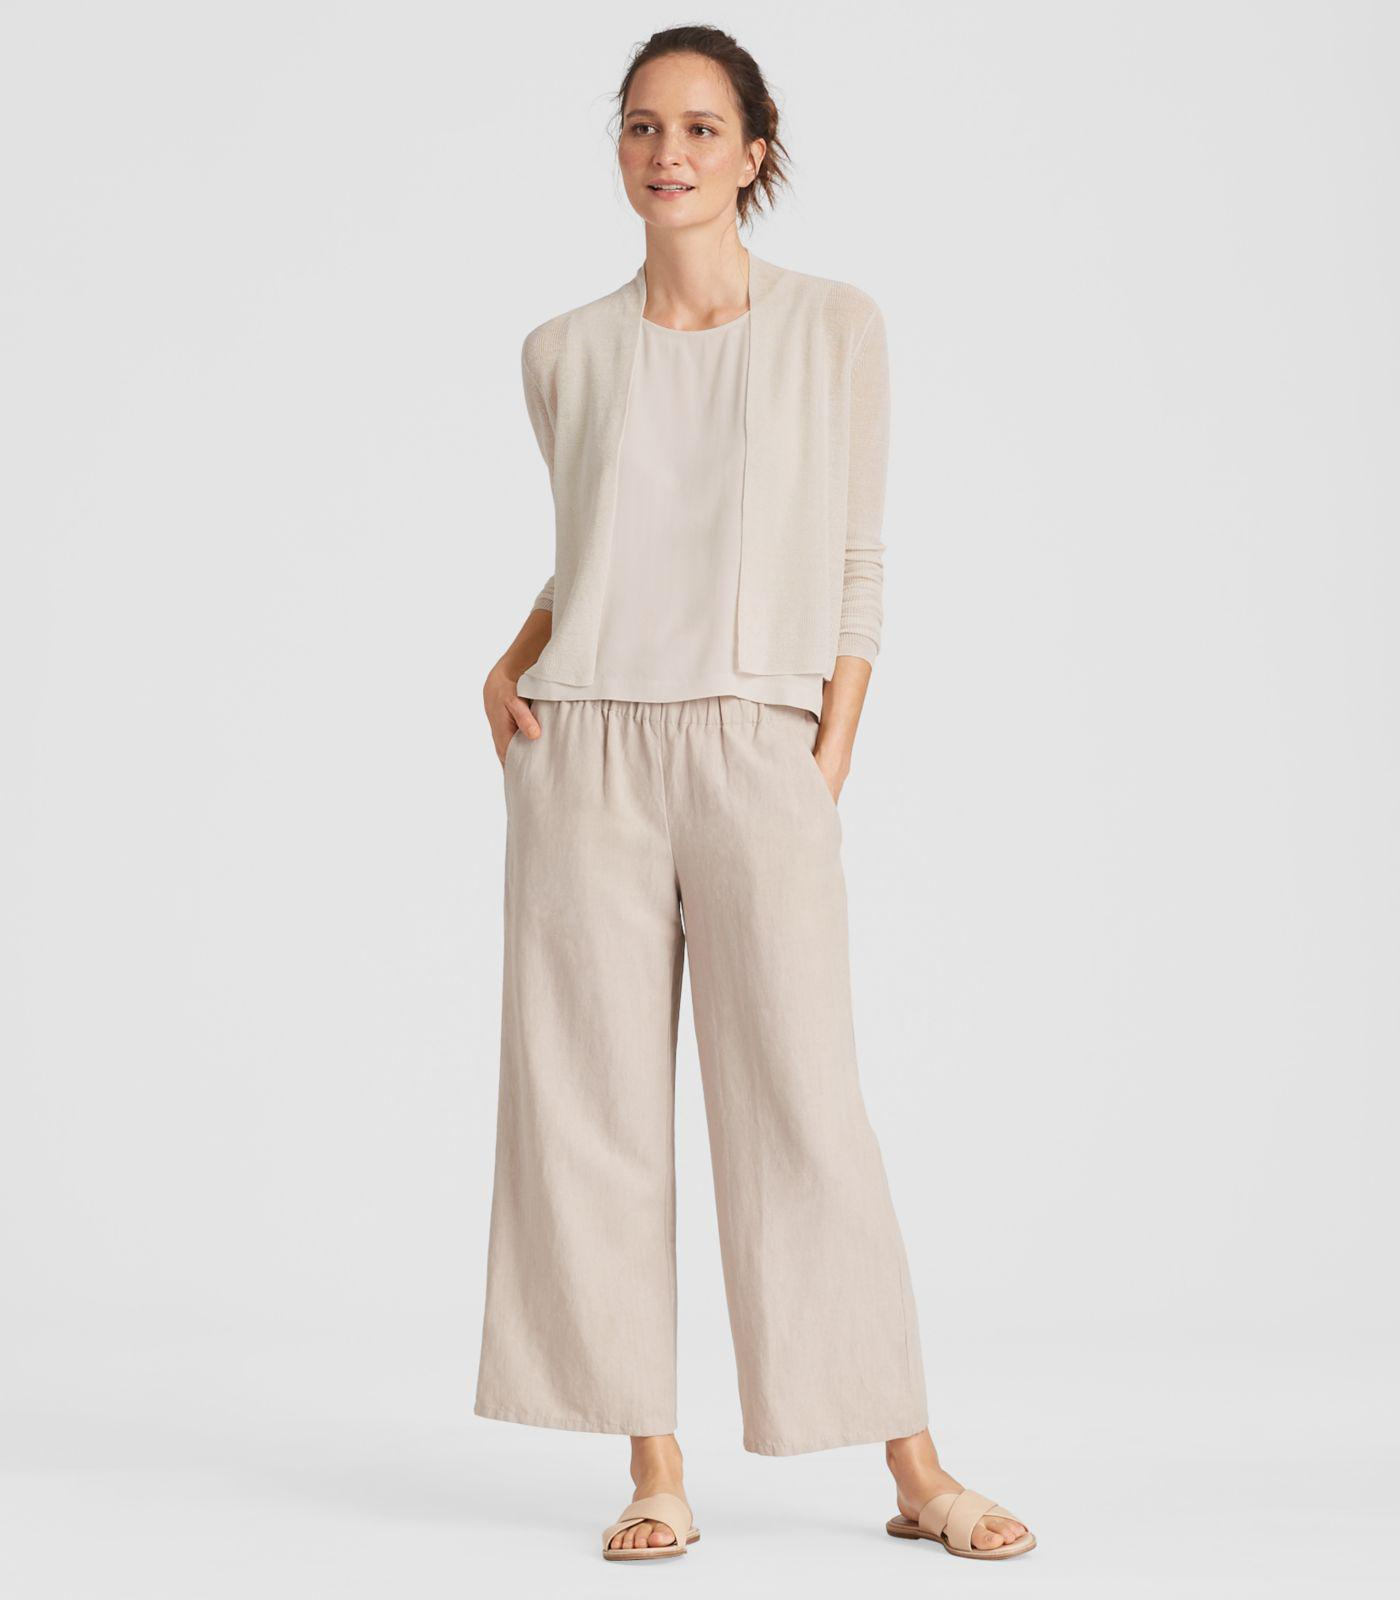 5210f32453d Eileen Fisher Organic Linen Crepe Knit Cropped Cardigan in Natural ...